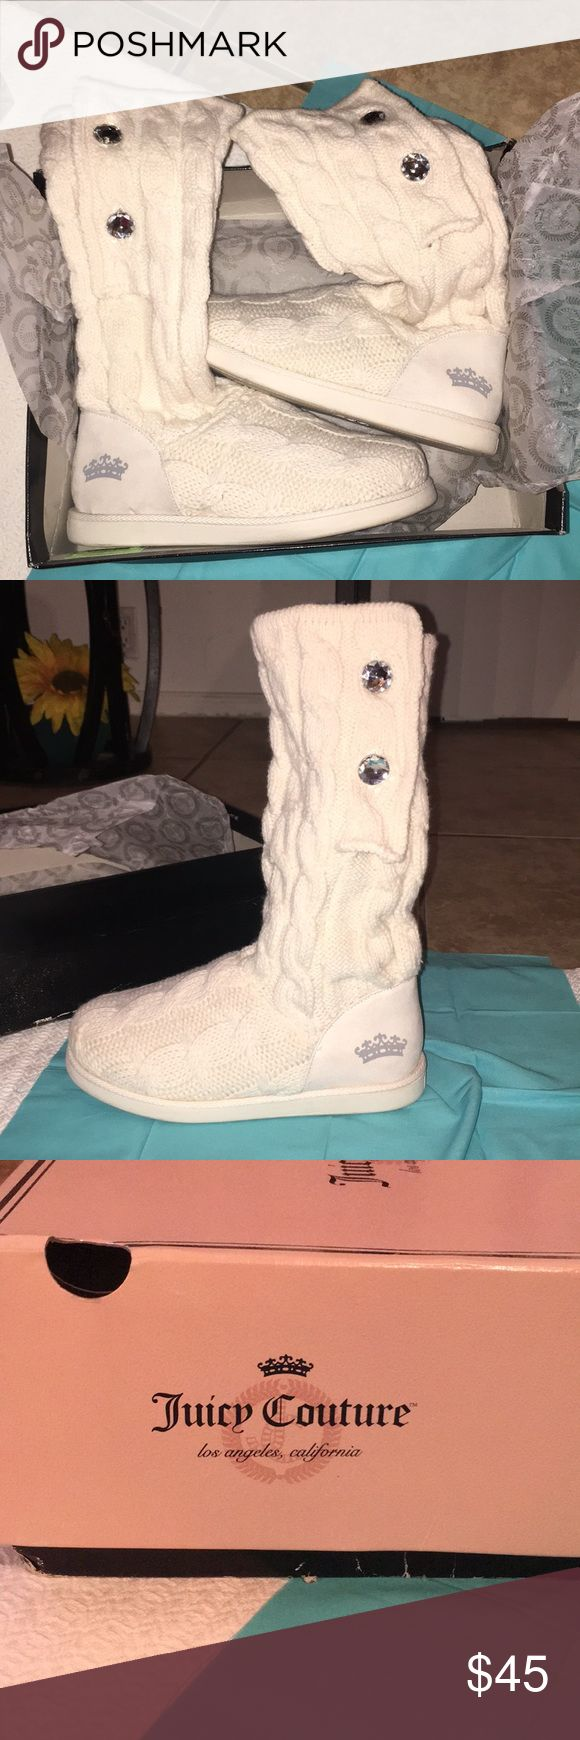 Juicy Couture Boots White Juicy Couture Boots with clear studs on the outside of each boot. Worn maybe 3 times If that. Comes with box. Soft material. Zero dirt or stains. Juicy Couture Shoes Winter & Rain Boots